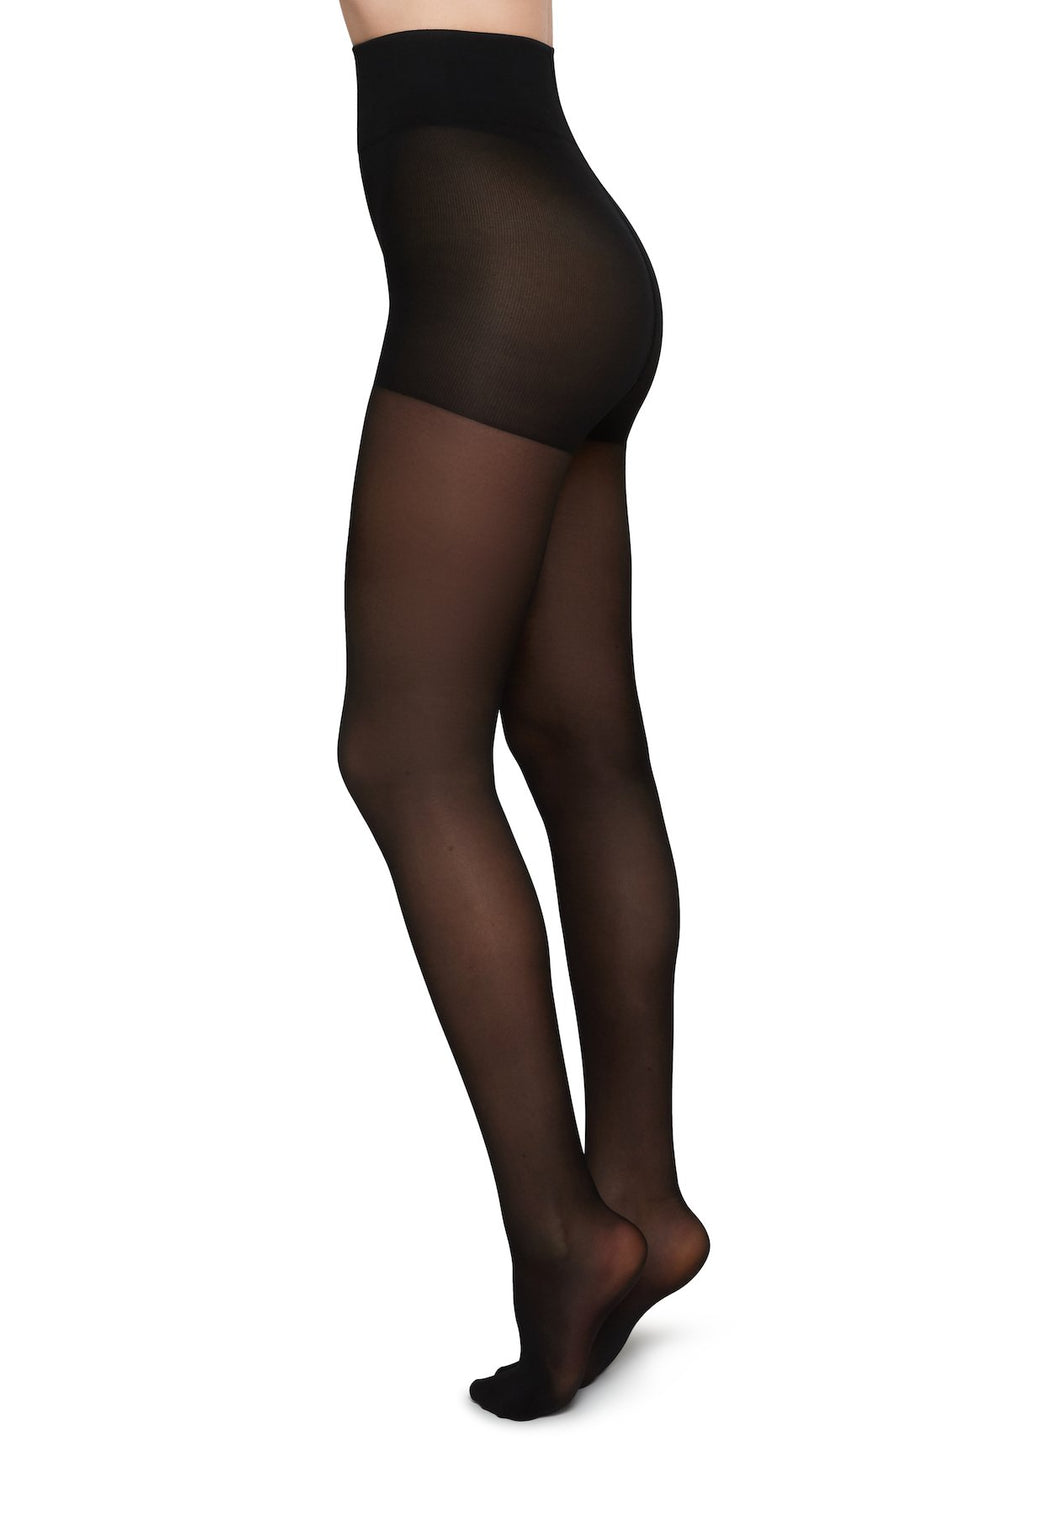 strumpfhose irma support tights black 30 den